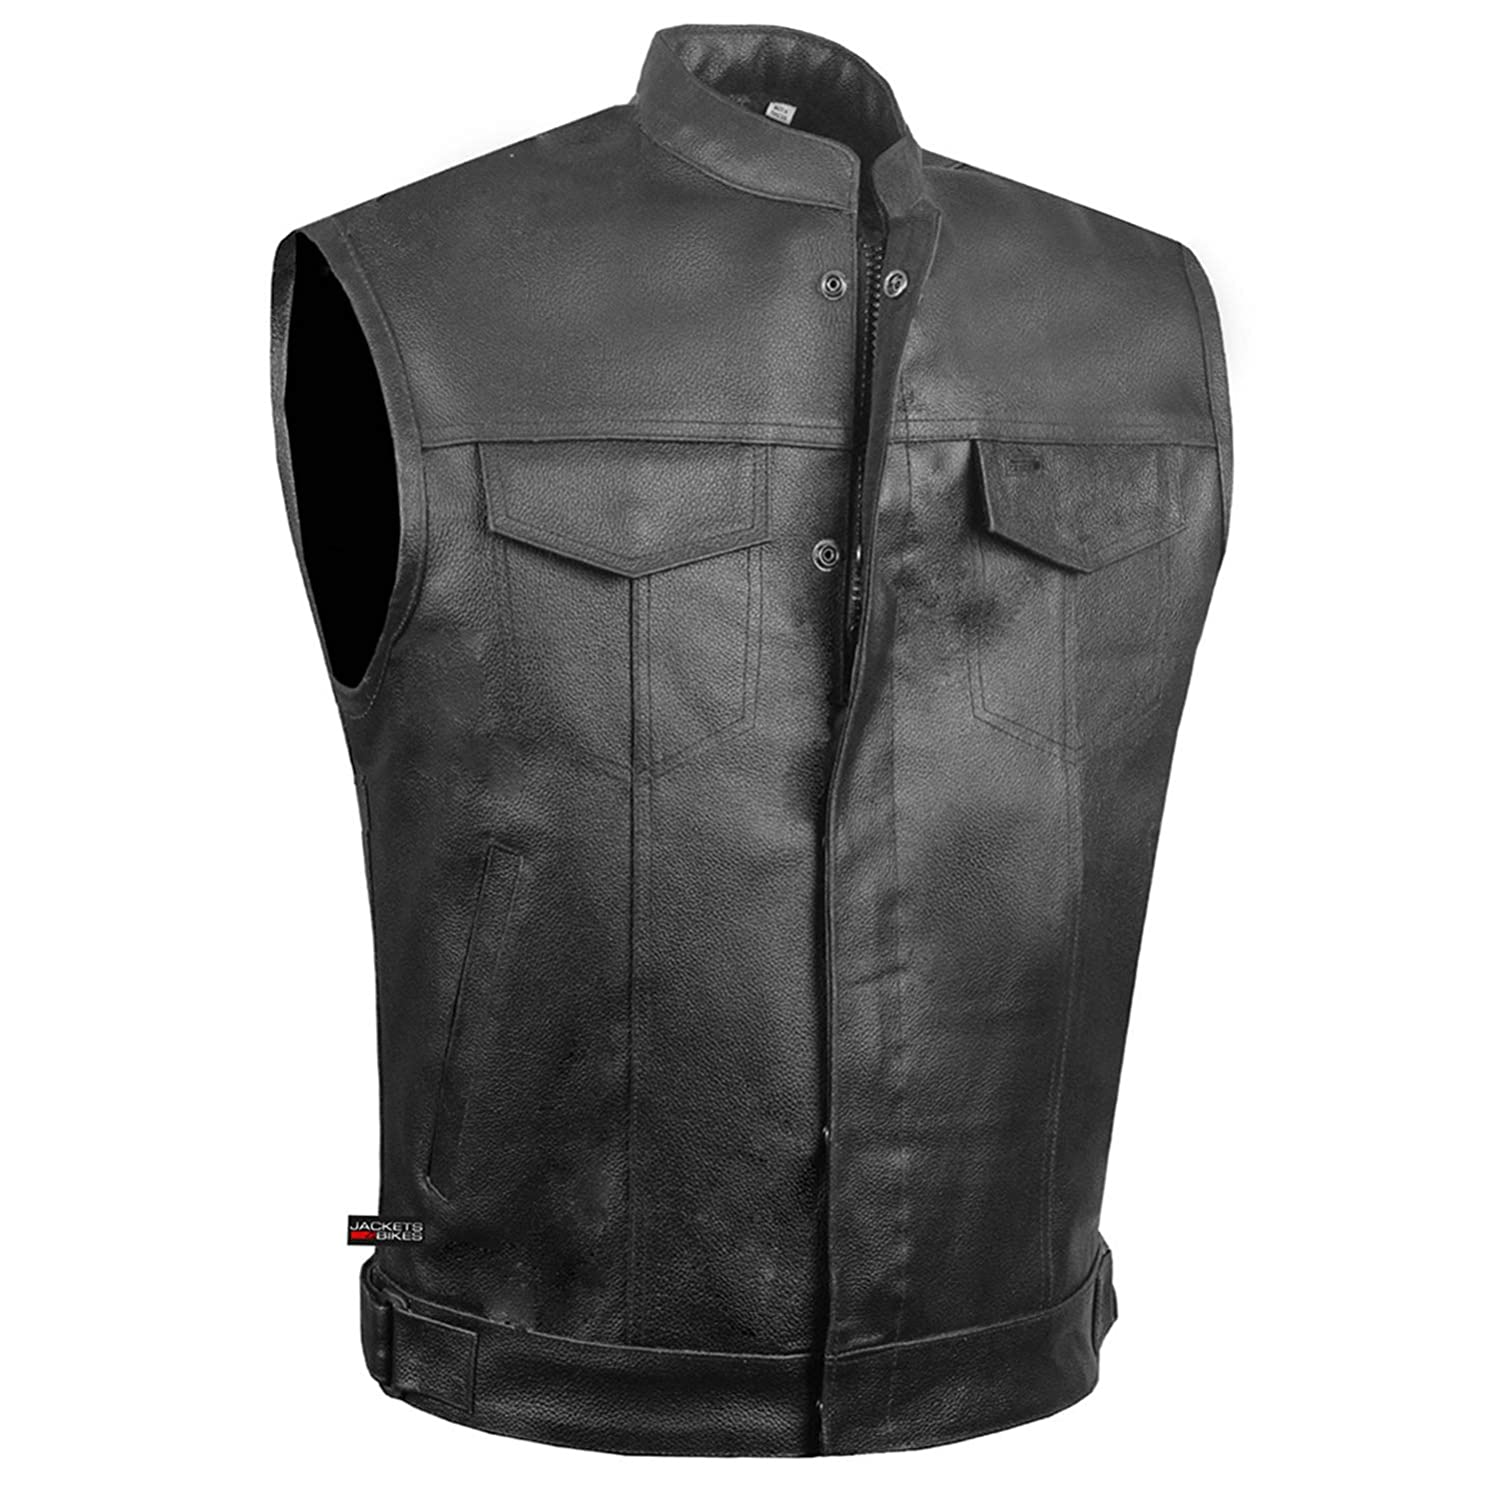 SOA Men's Leather Motorcycle Concealed Gun Pockets Armor Biker Club Vest XL